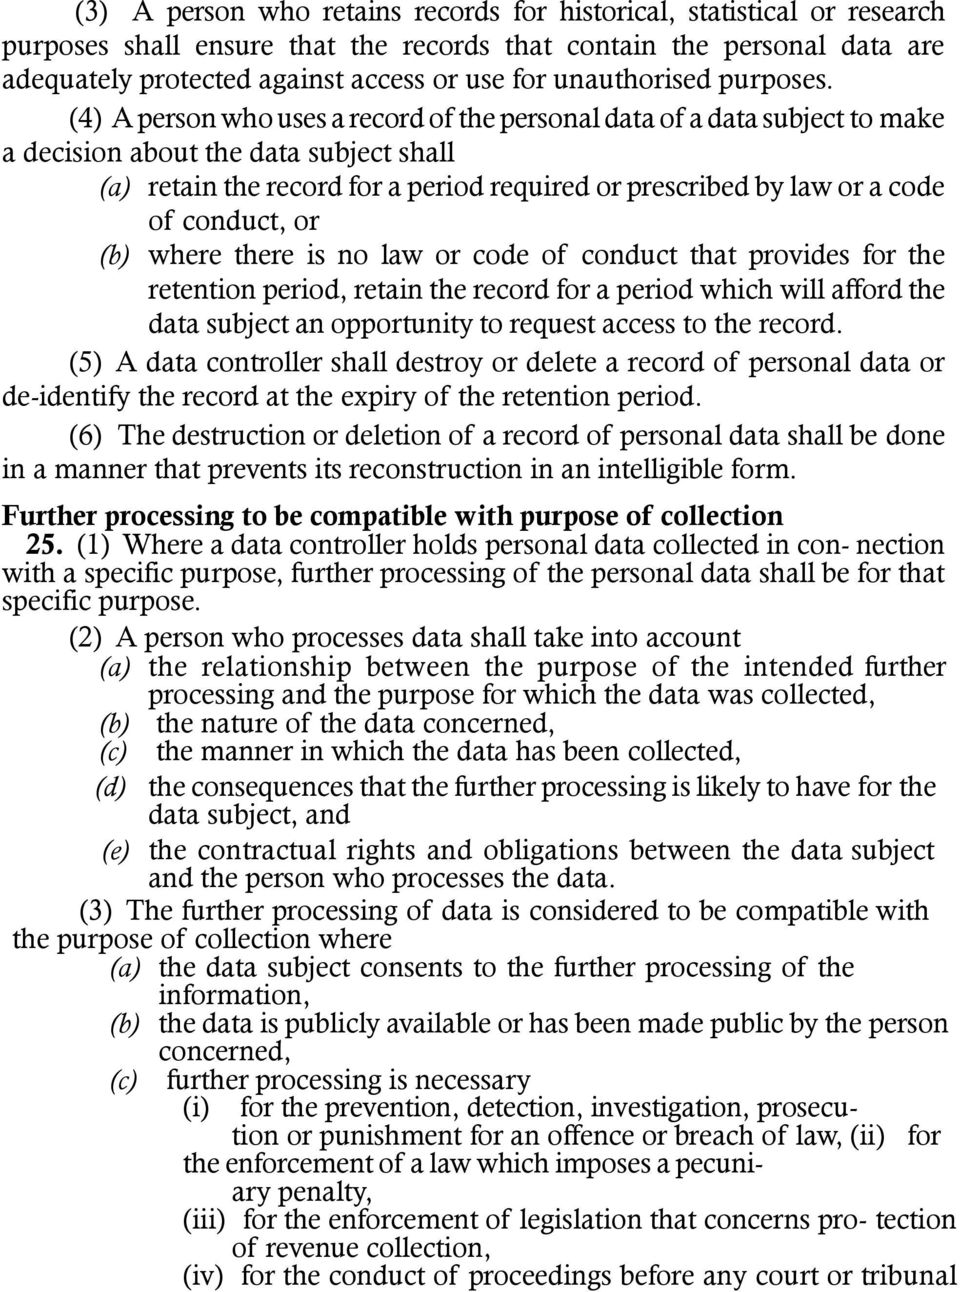 (4) A person who uses a record of the personal data of a data subject to make a decision about the data subject shall (a) retain the record for a period required or prescribed by law or a code of